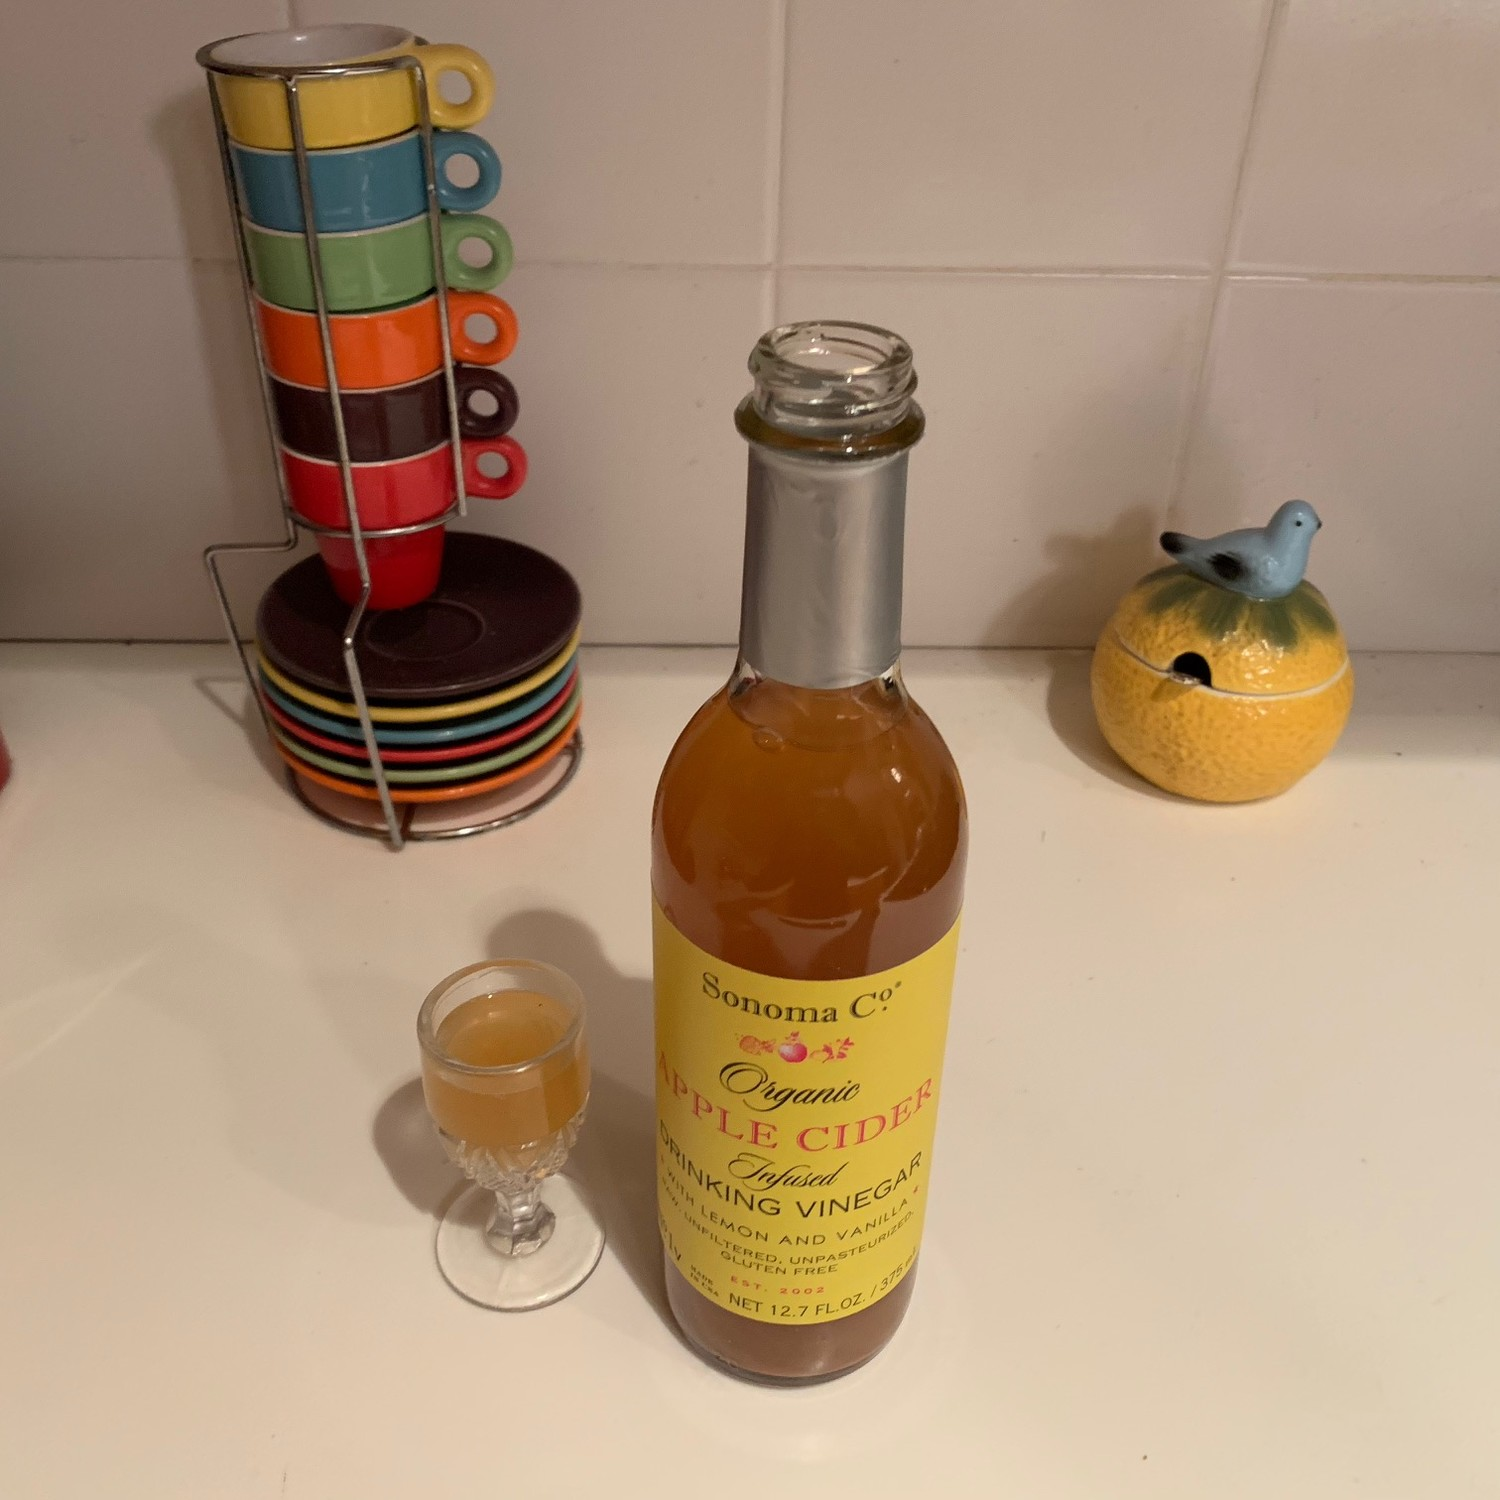 A shot of this infused drinking vinegar goes a long way - but add it to your favorite cocktail or detox drink to enjoy!